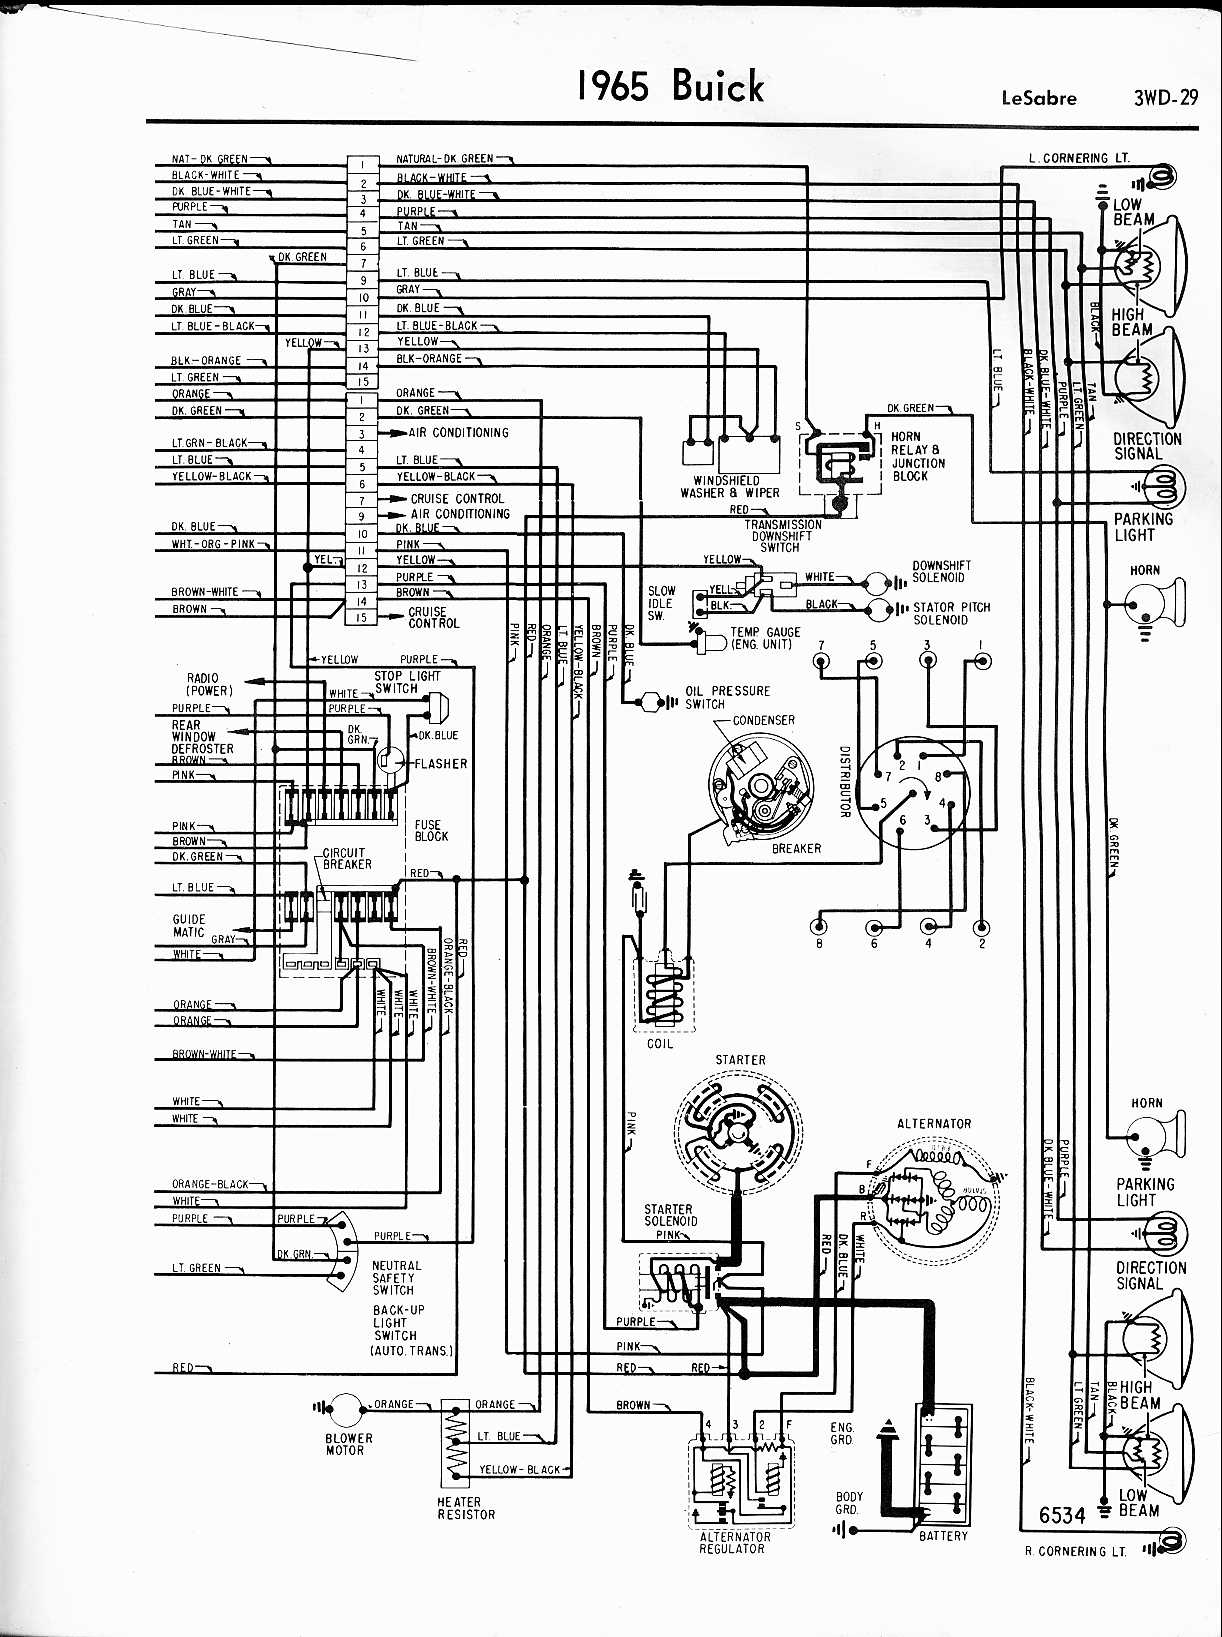 Buick wiring diagrams 1957 1965 1965 lesabre right half swarovskicordoba Gallery